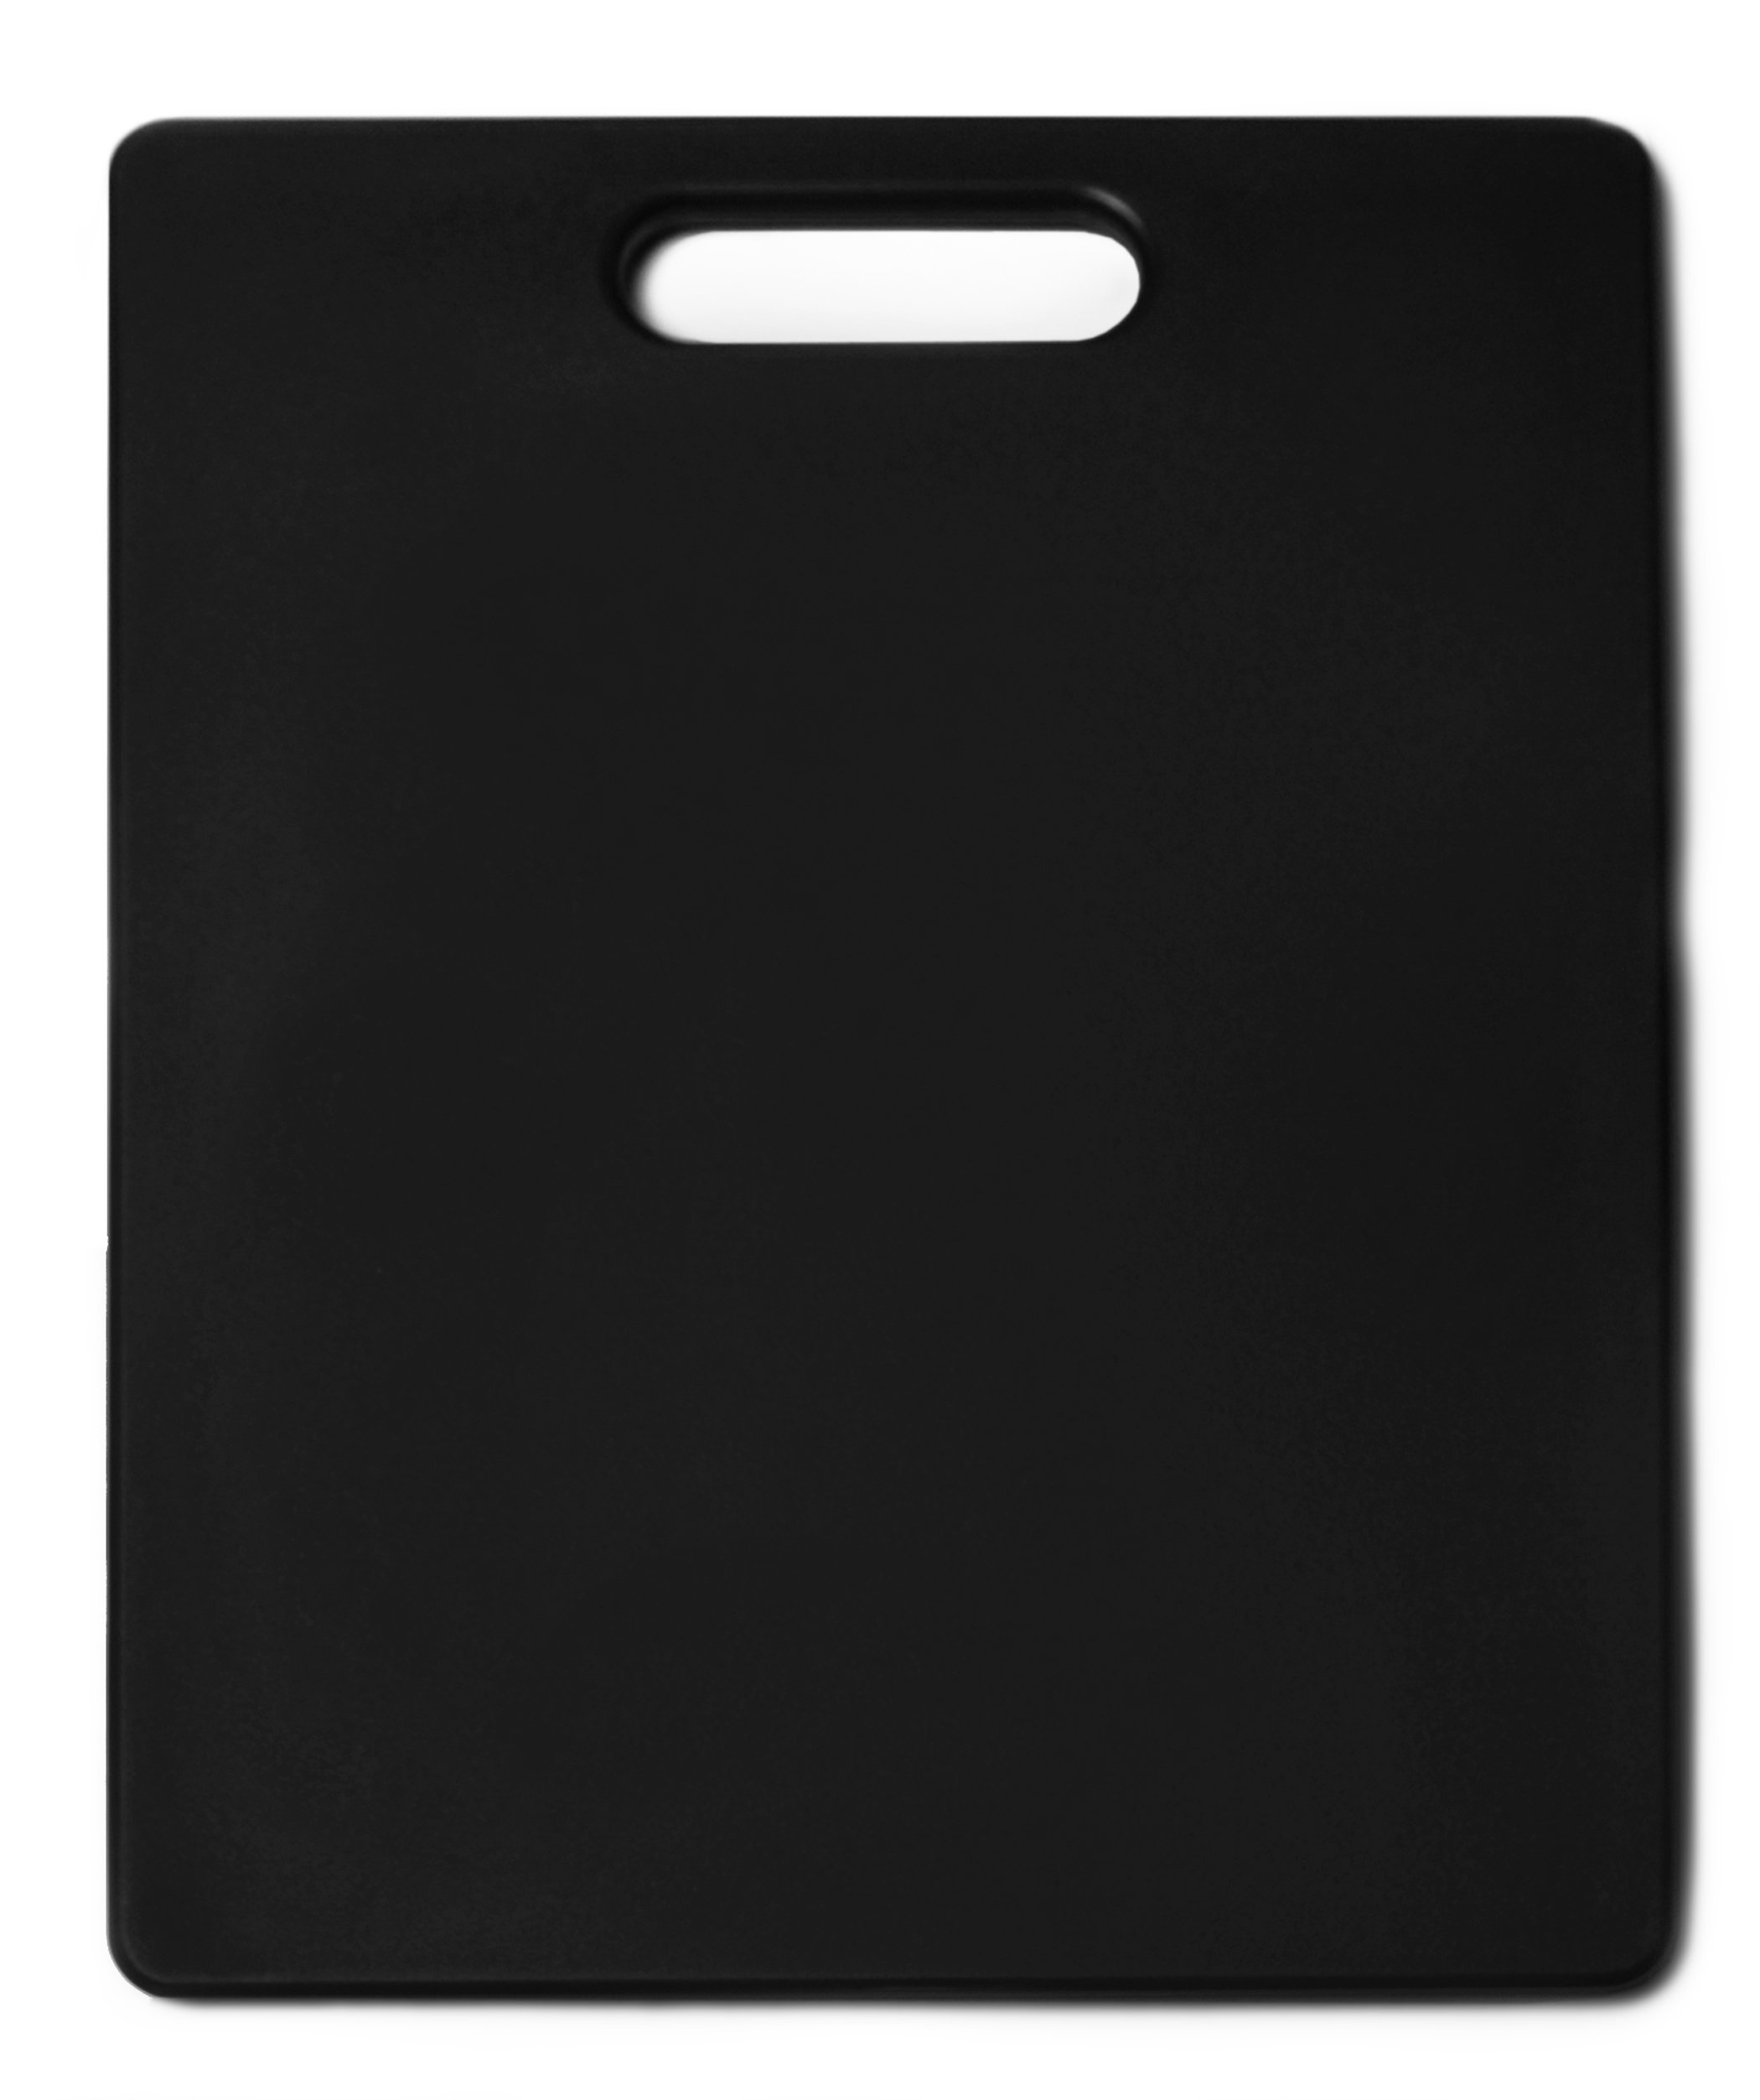 Architec Original Gripper Cutting Board, 11'' by 14'', Black, Patented Non-Slip Technology and Dishwasher Safe Cutting Board